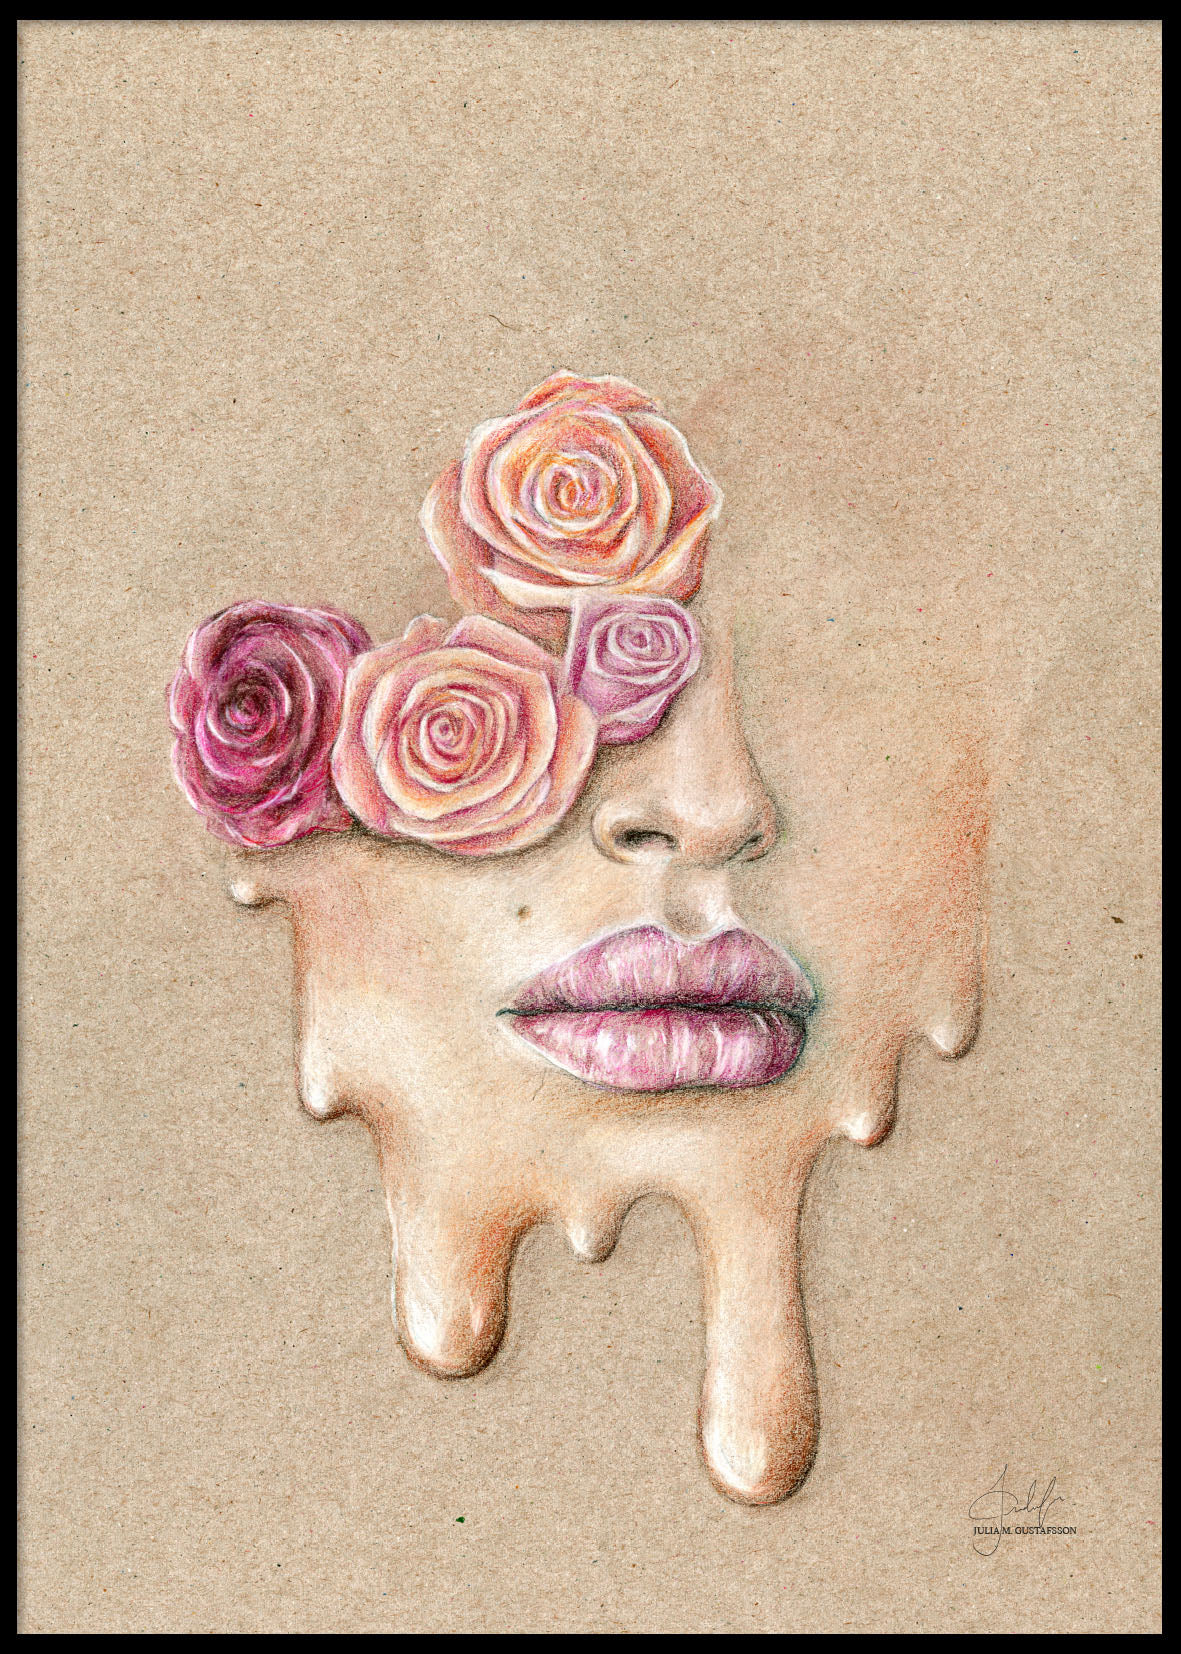 HAND-PAINTED FLOWER FACE POSTER